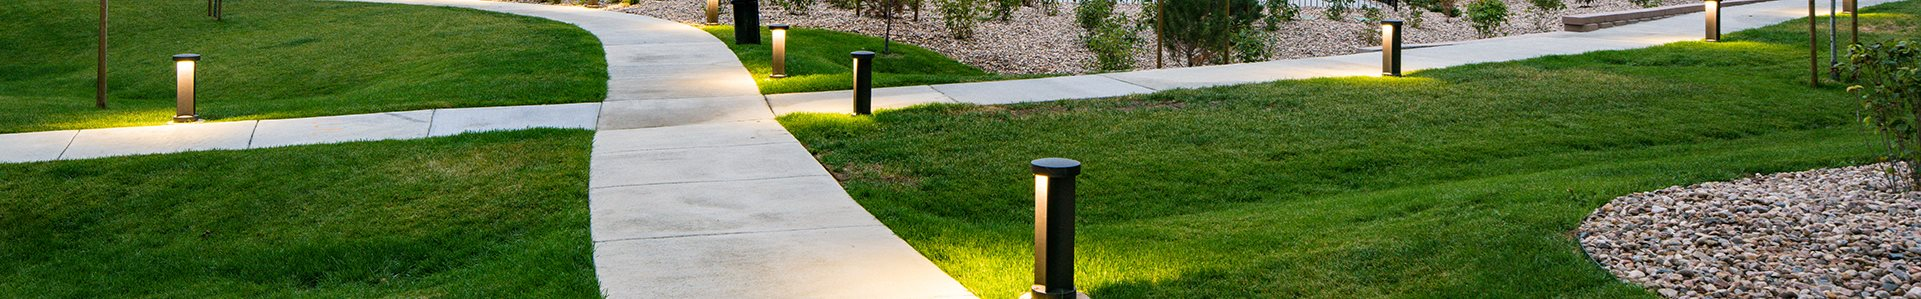 Lite Pathway to Apt Buildings  Copper River Apartments l Spokane WA